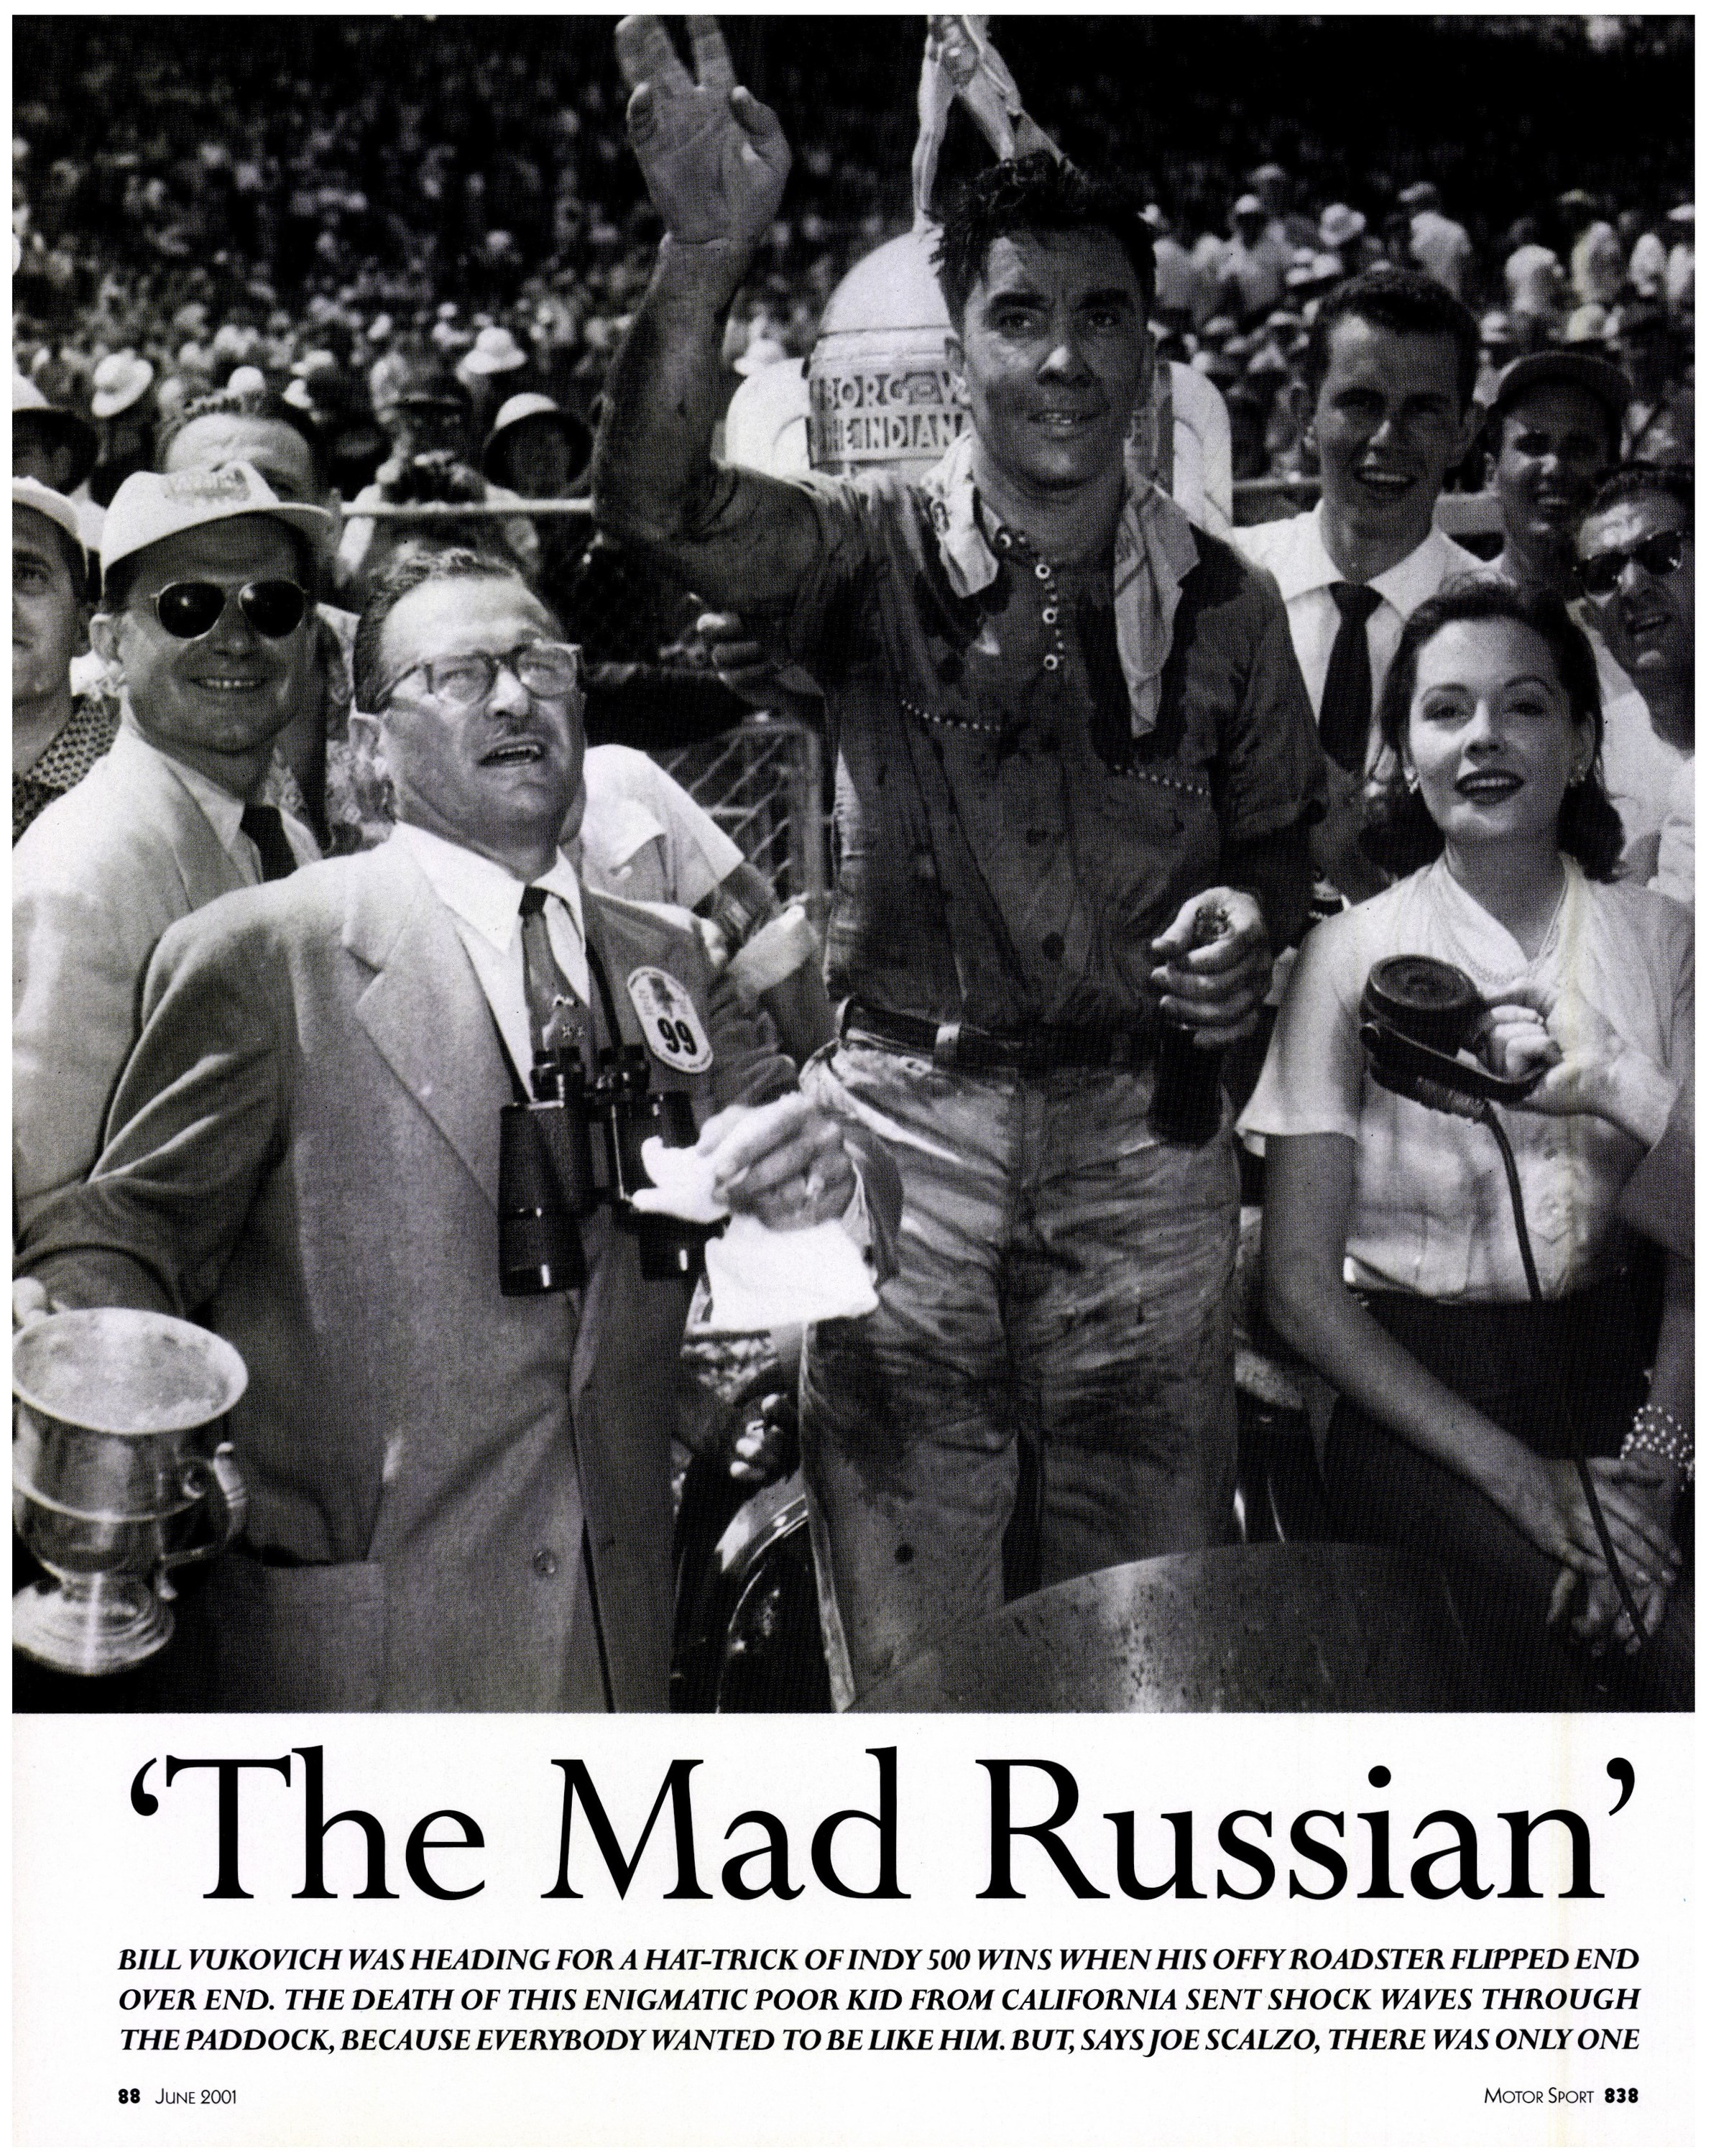 the mad russian image